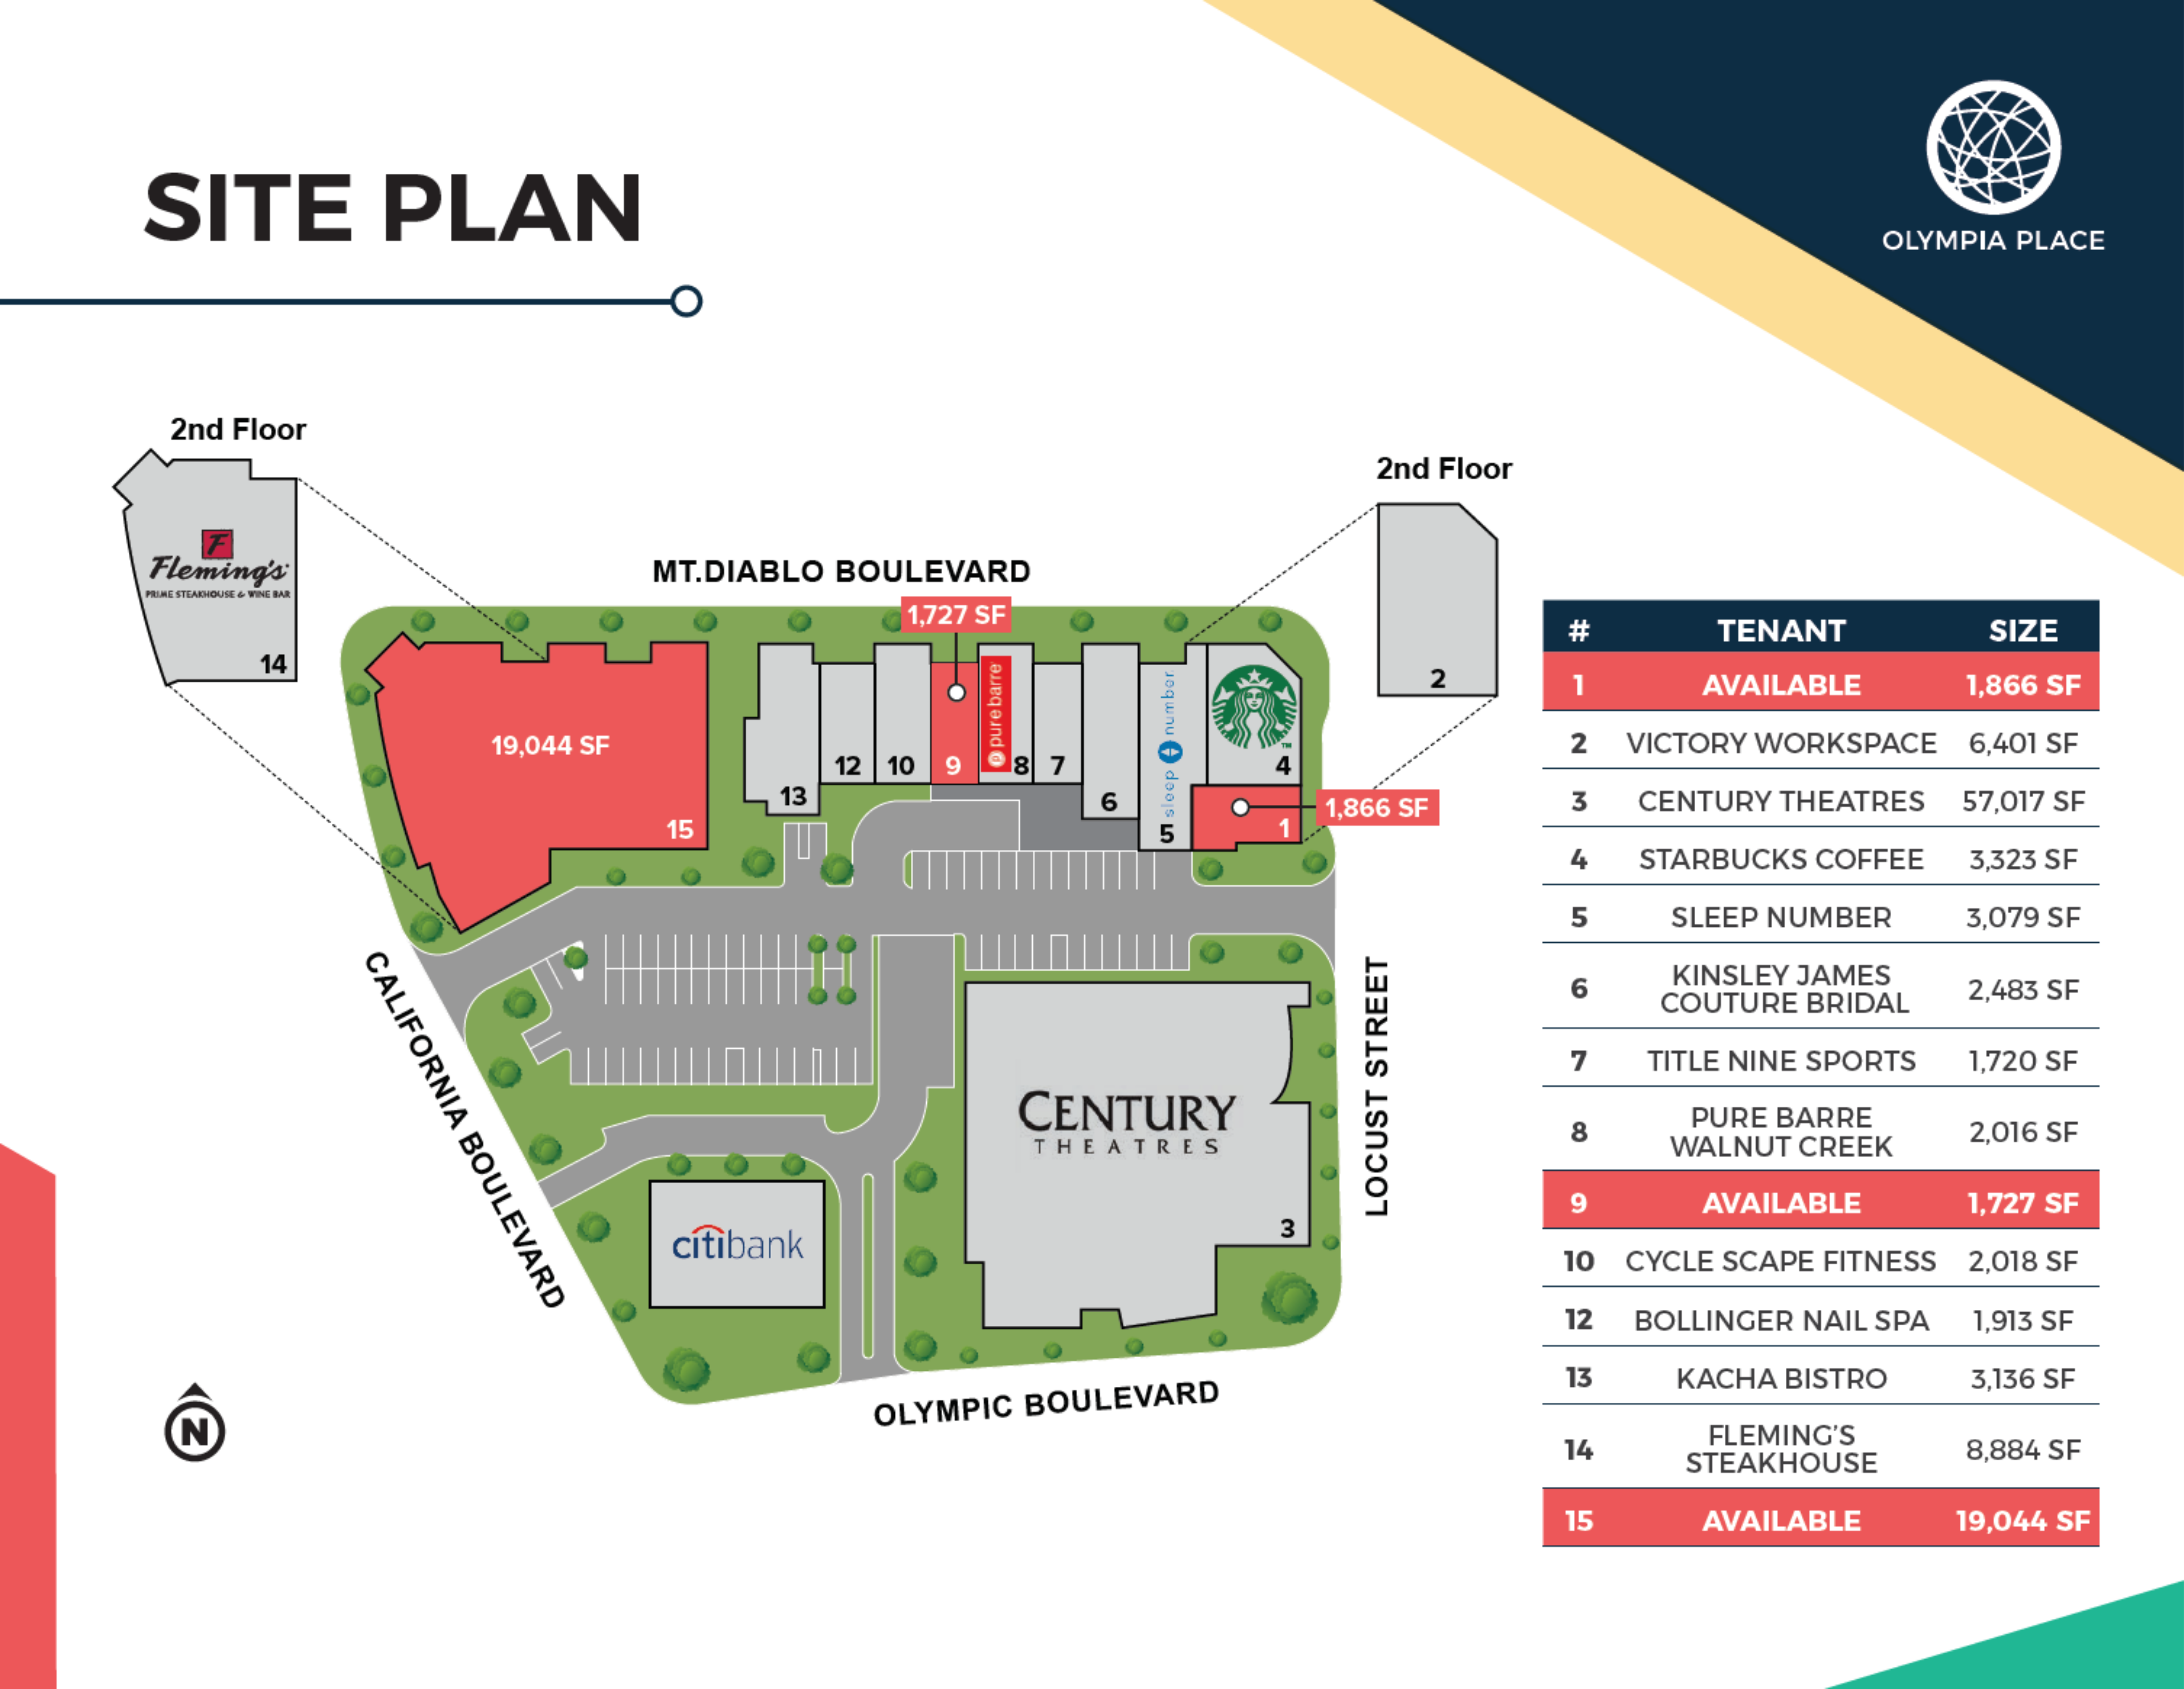 Olympia Place: site plan